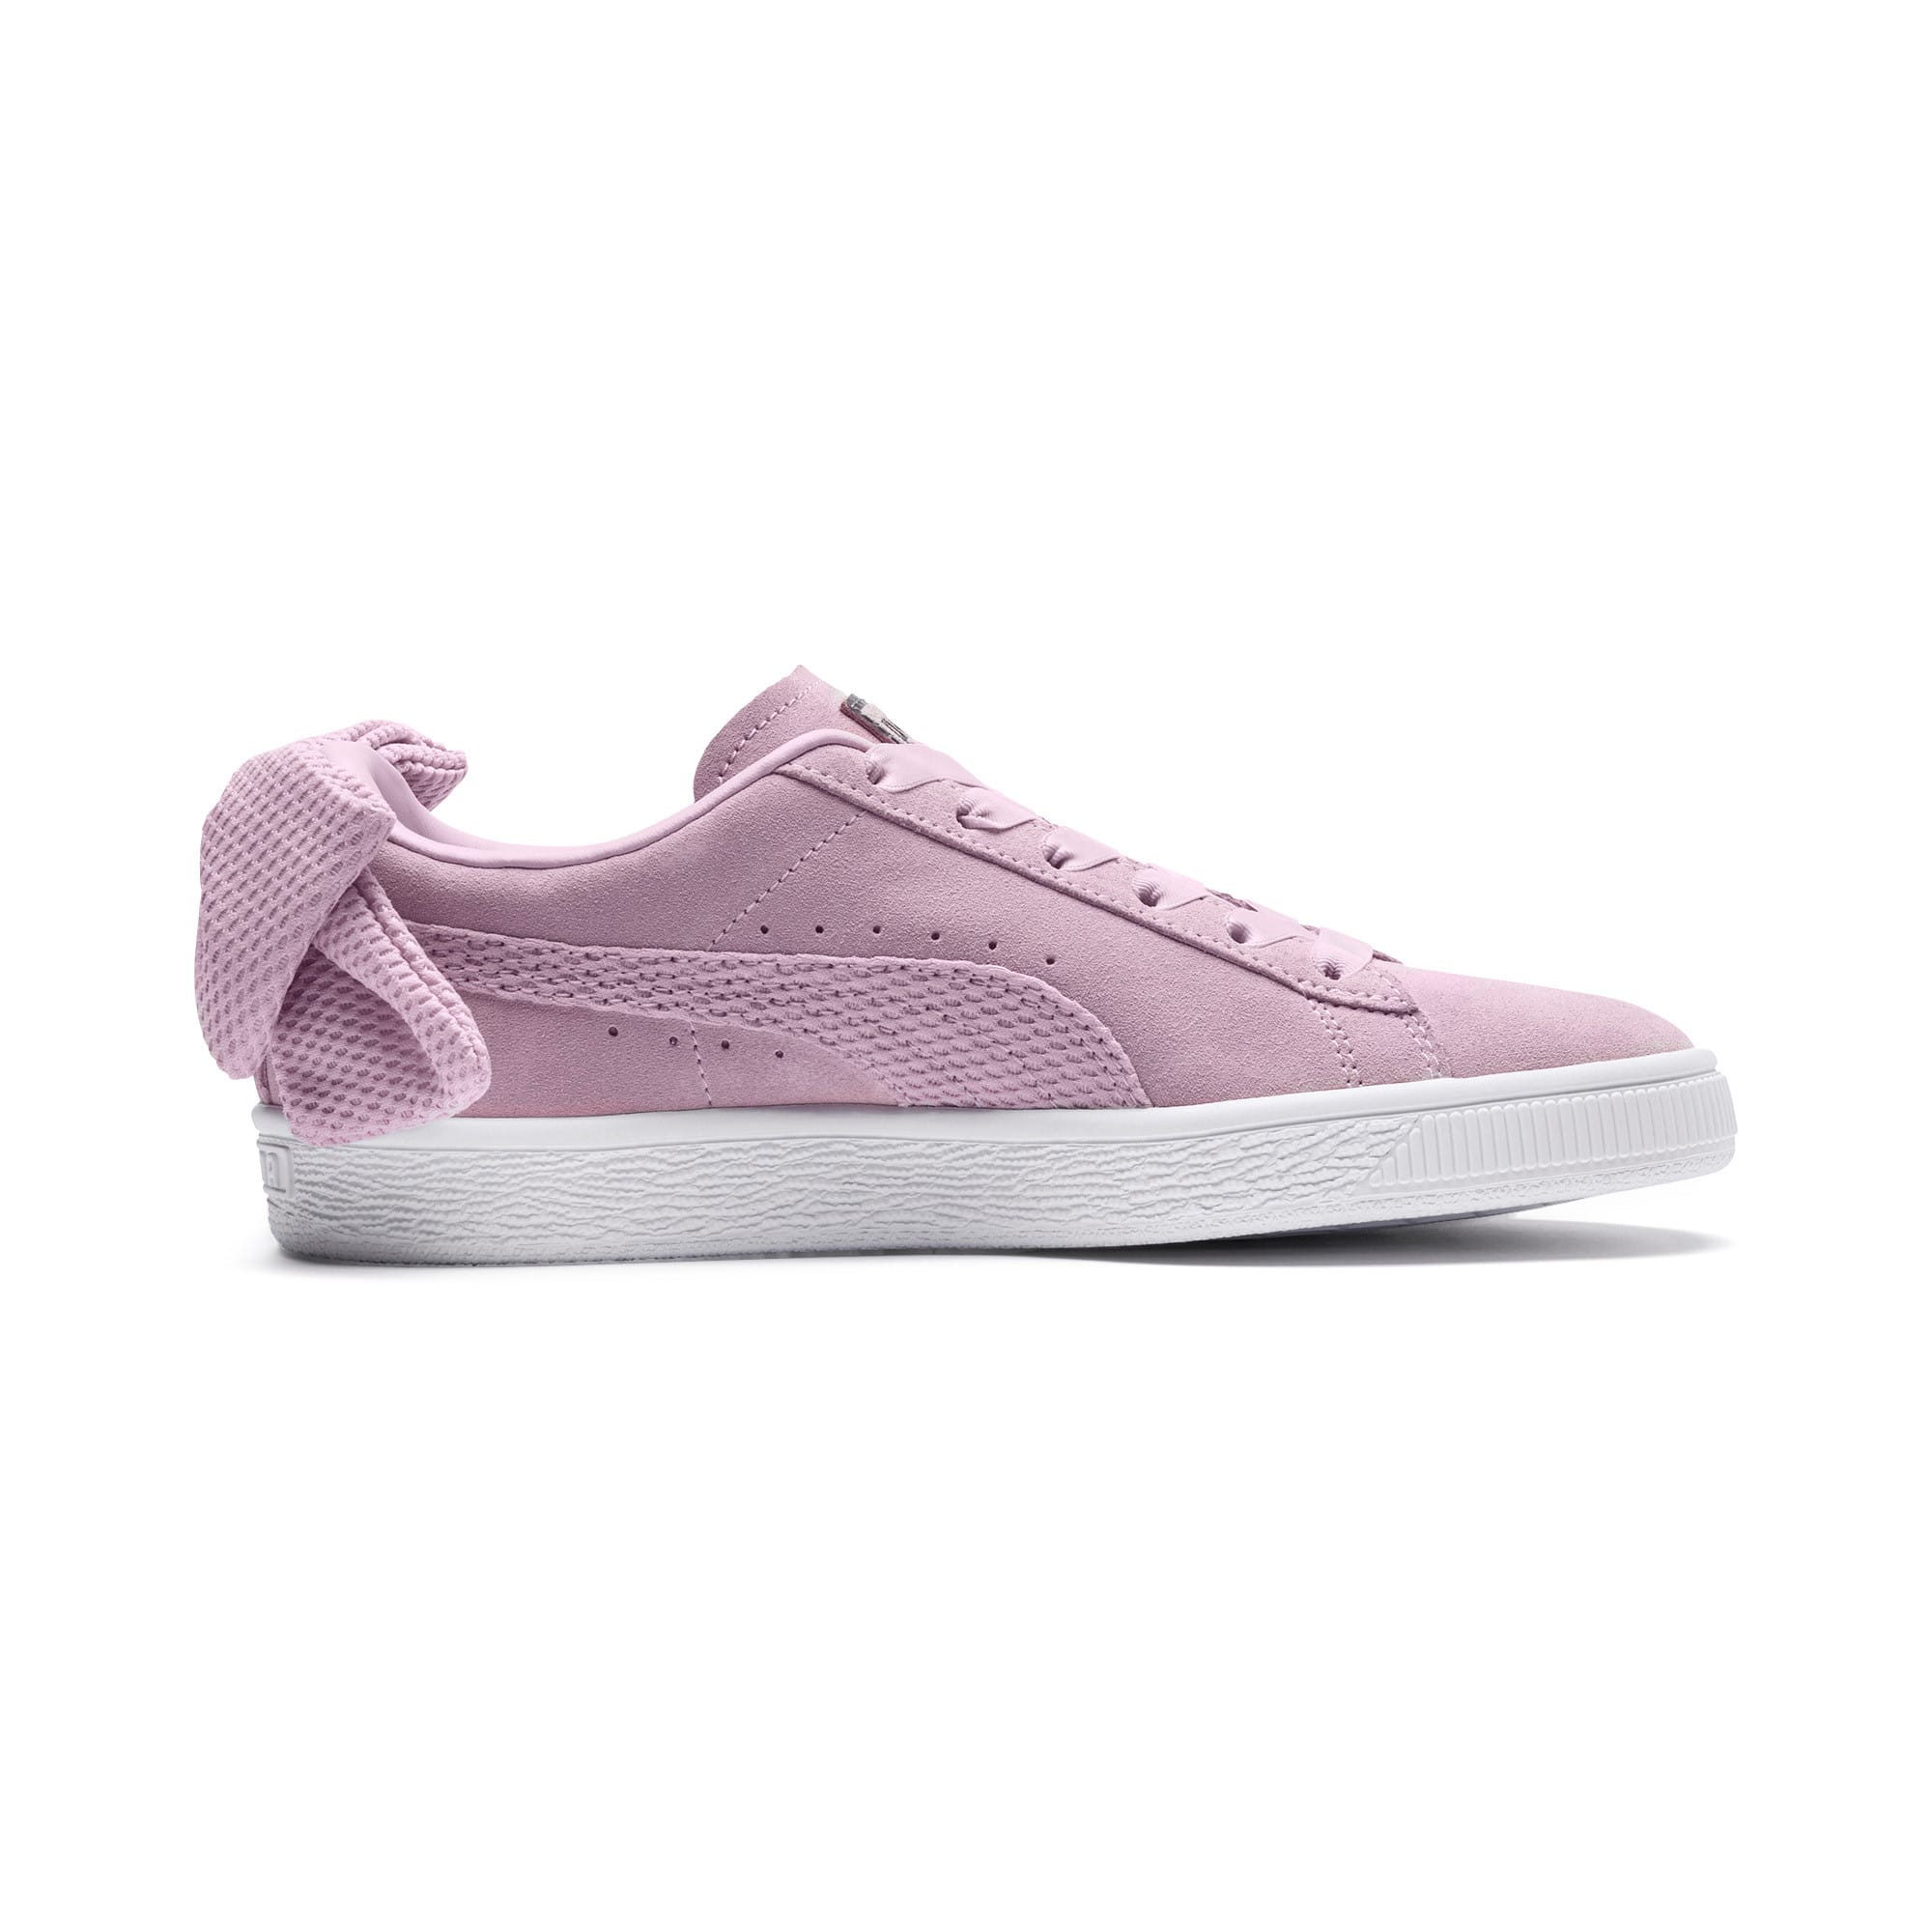 Thumbnail 5 of Suede Bow Uprising Women's Sneakers, Winsome Orchid-Puma White, medium